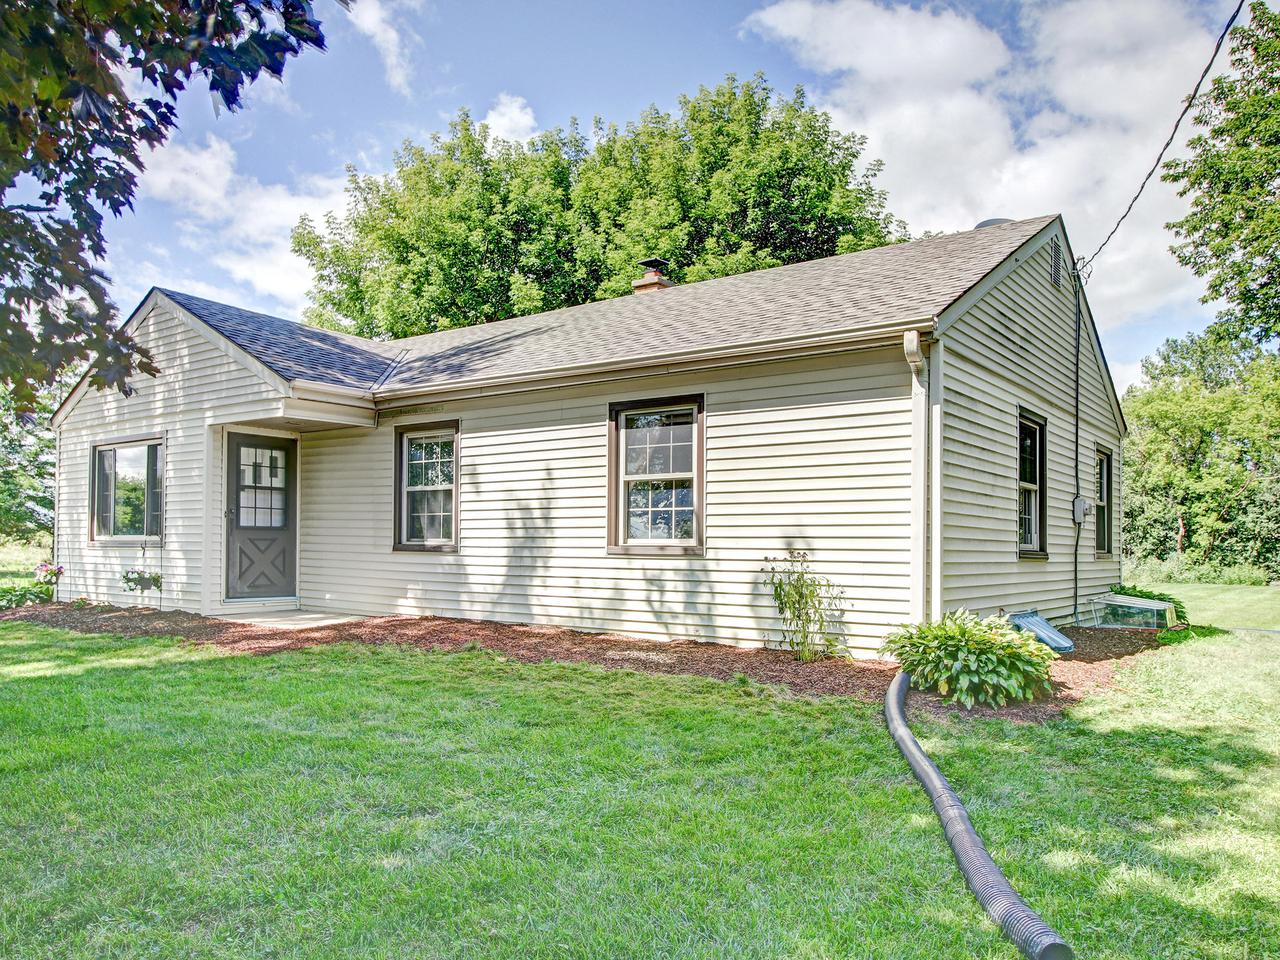 Super adorable ranch situated on over one acre across from 438-acre Mequon nature preserve/park with trails. Brand new (to-be-built) 2 car attached garage w/mud room.  Refinished hardwood floors flow throughout.  Eat in kitchen with breakfast bar, newer cabinetry, recessed lighting, updated countertops, and stainless steel appliances.   White trim and doors. newer windows throughout. Updated bathroom with tiled shower and jetted soaking tub. Bedroom 3 includes wardrobe closet. Lower level has been insulated and dry-walled for added living space. Egress window, plumbed for second full bath (currently office), and epoxy floor.   Electrical and plumbing has been updated.  Shed, extra parking space, fruit trees -pear, apple and peach, mature trees, plenty of room to roam. Chickens allowed.